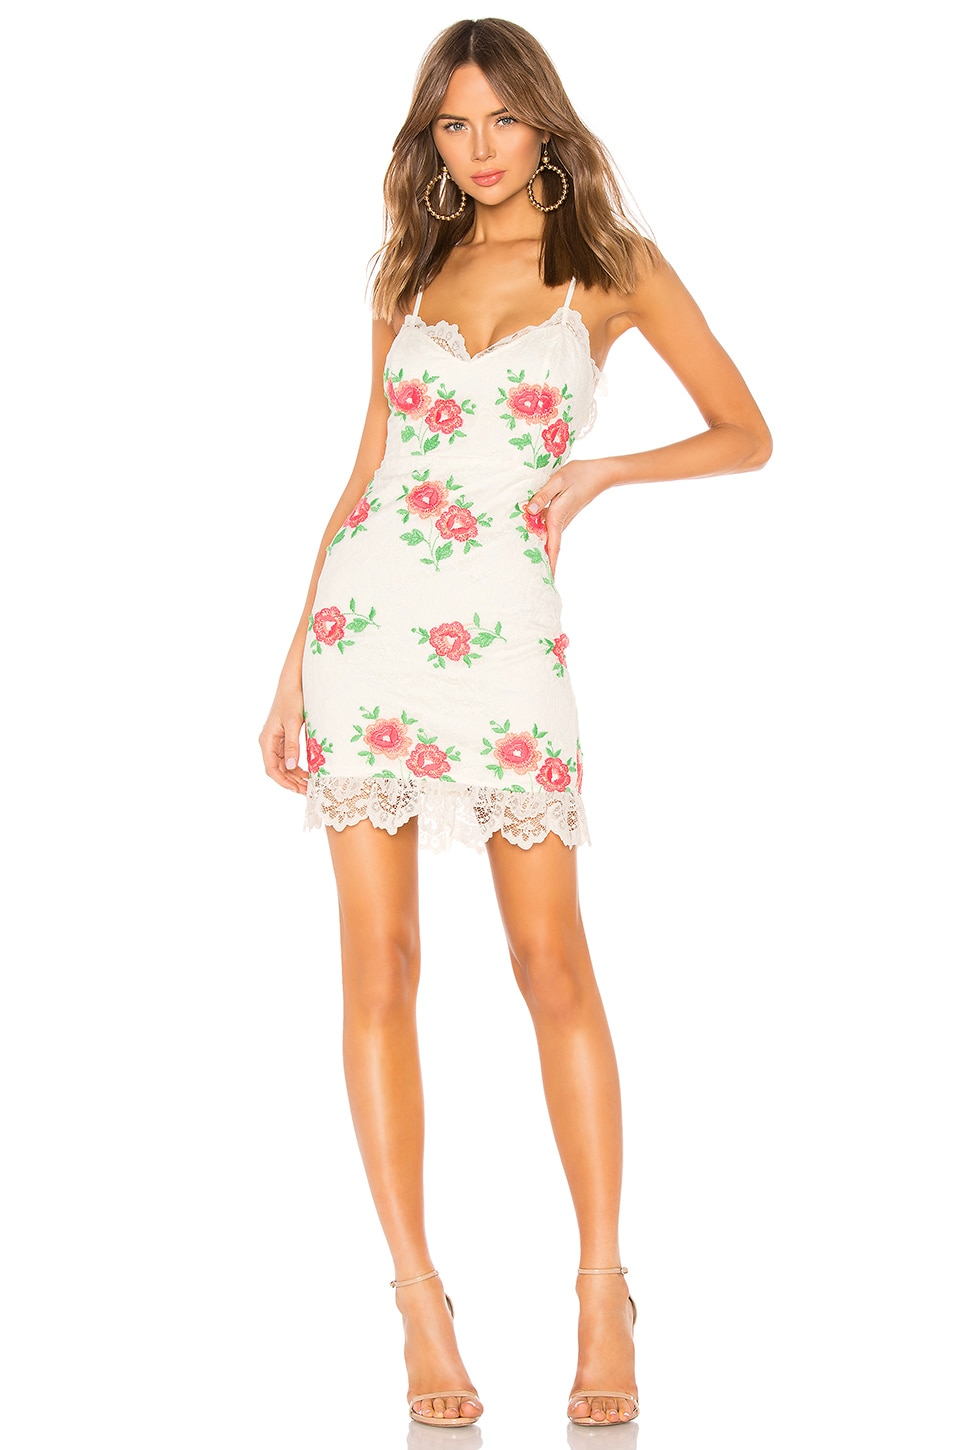 X BY NBD Samson Mini Dress in Ivory